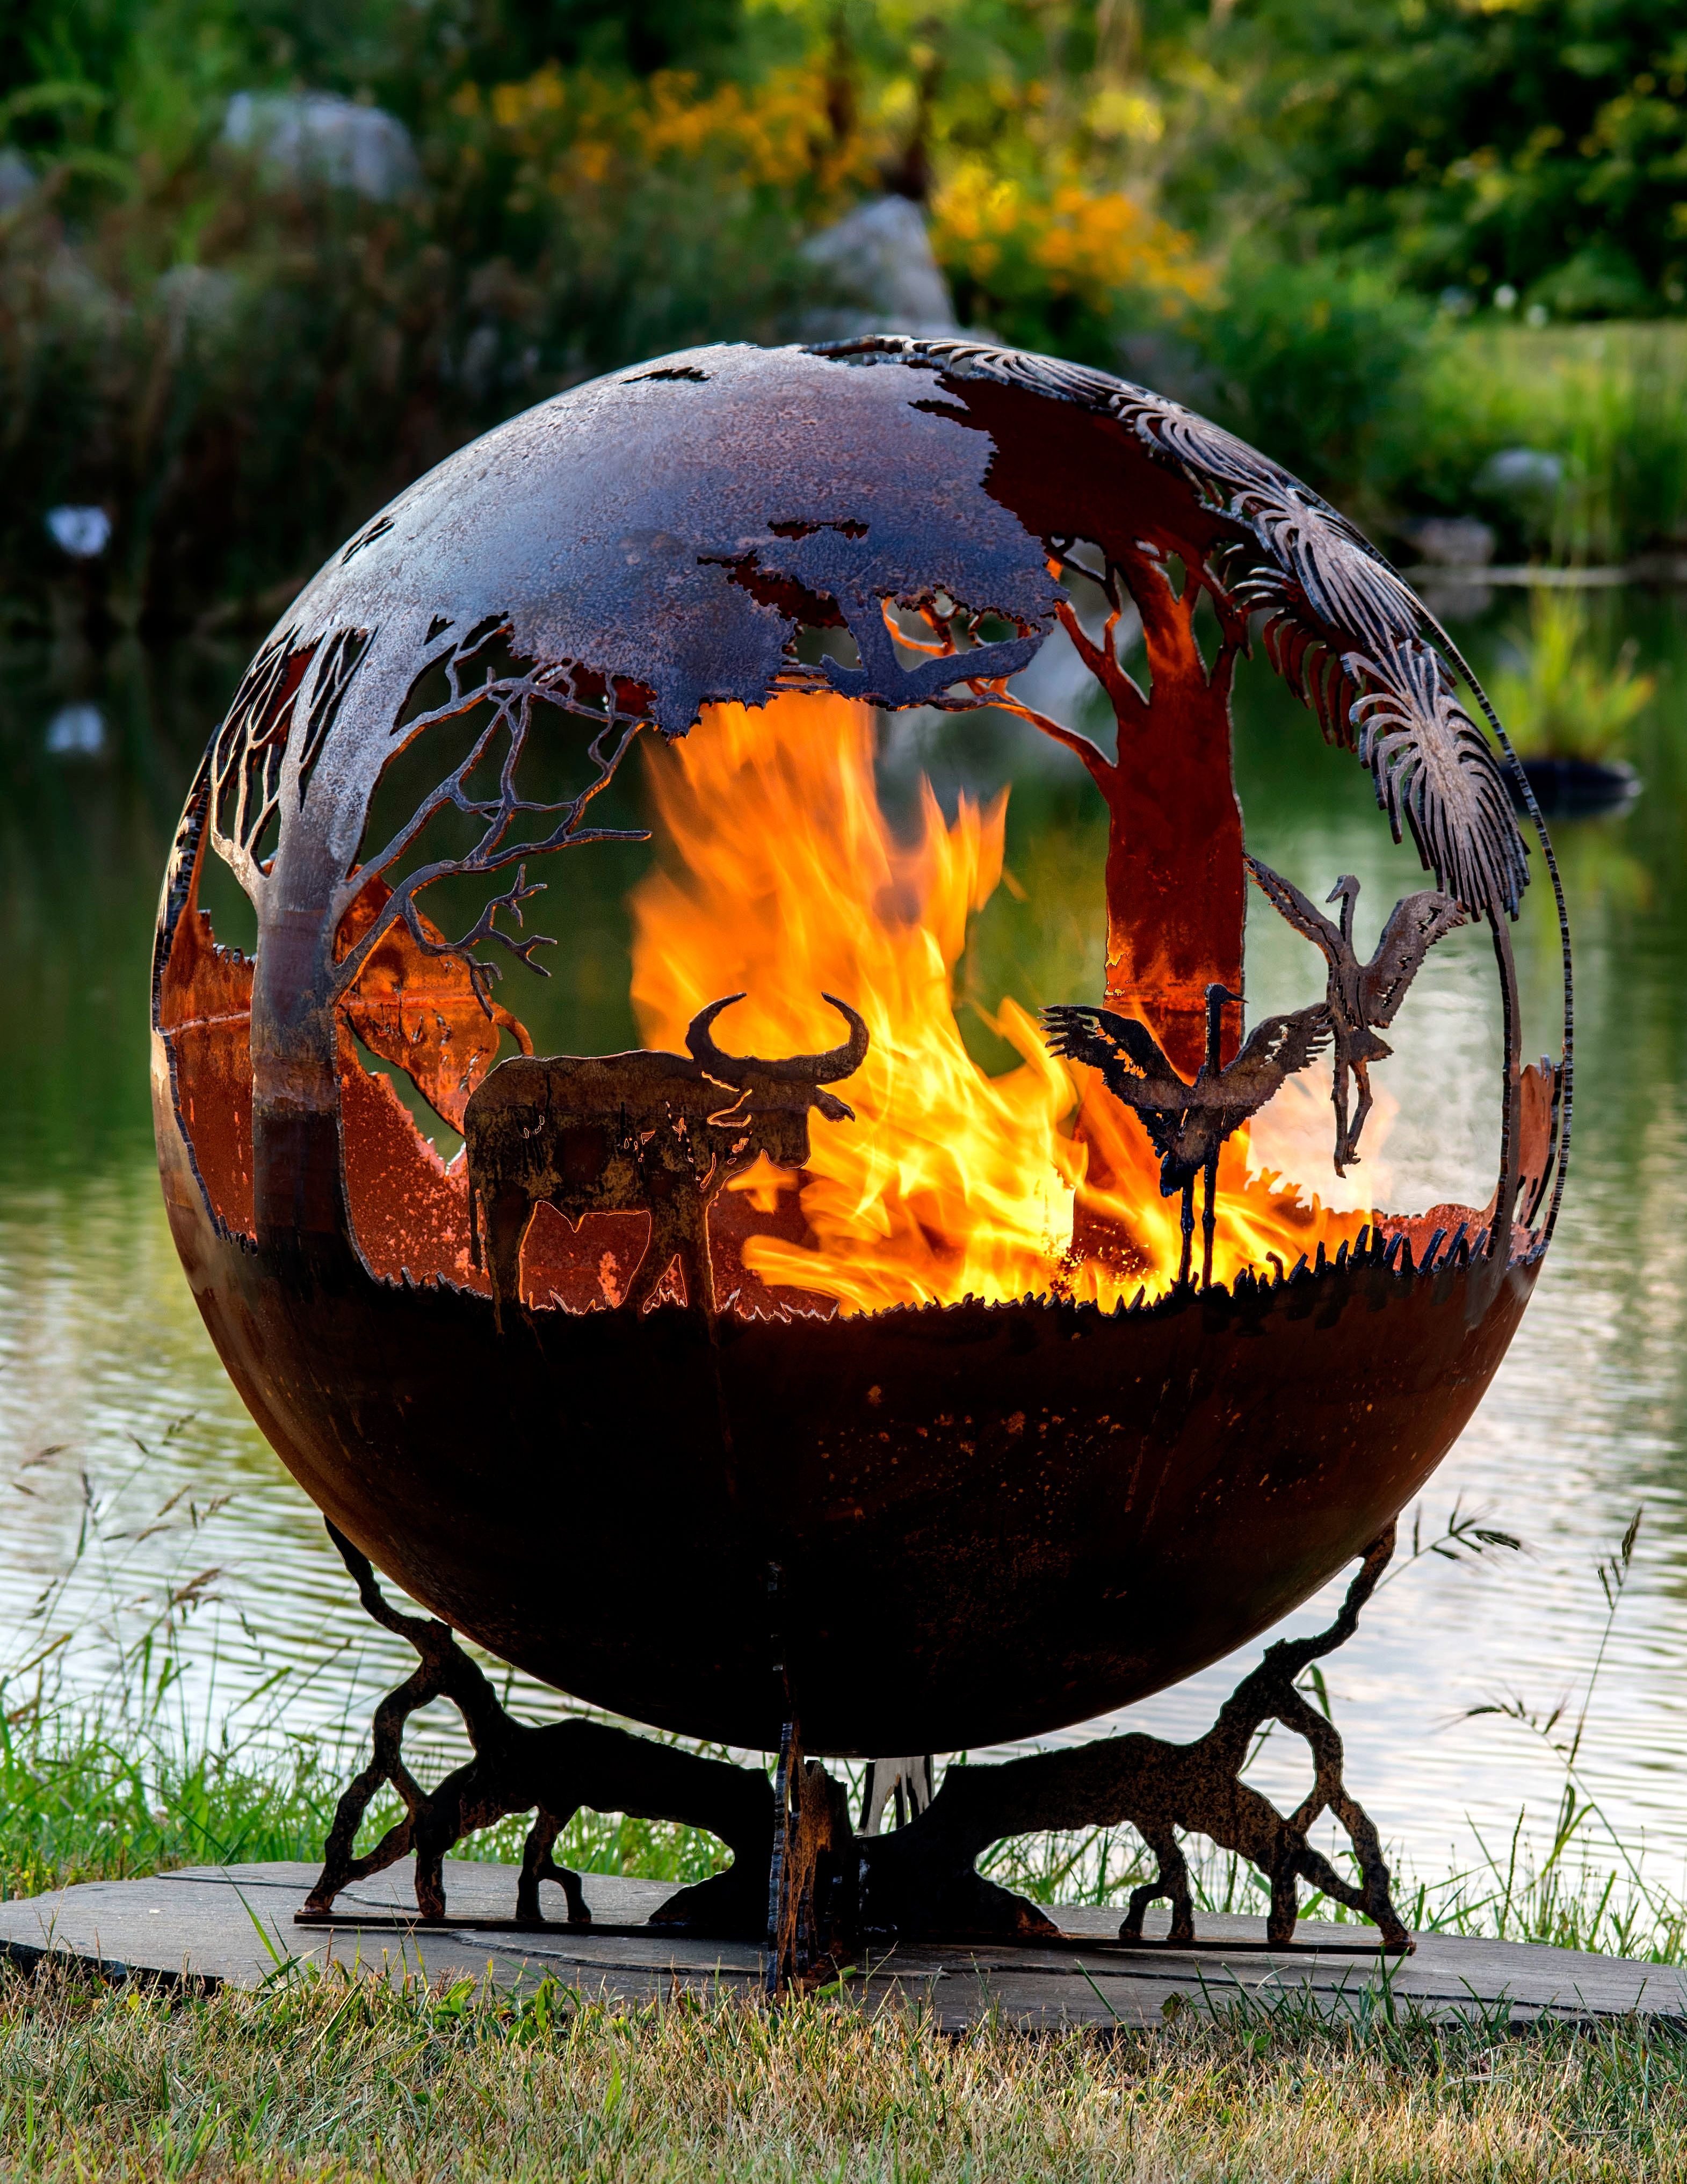 outback australia fire pit sphere wood or gas burning firepit